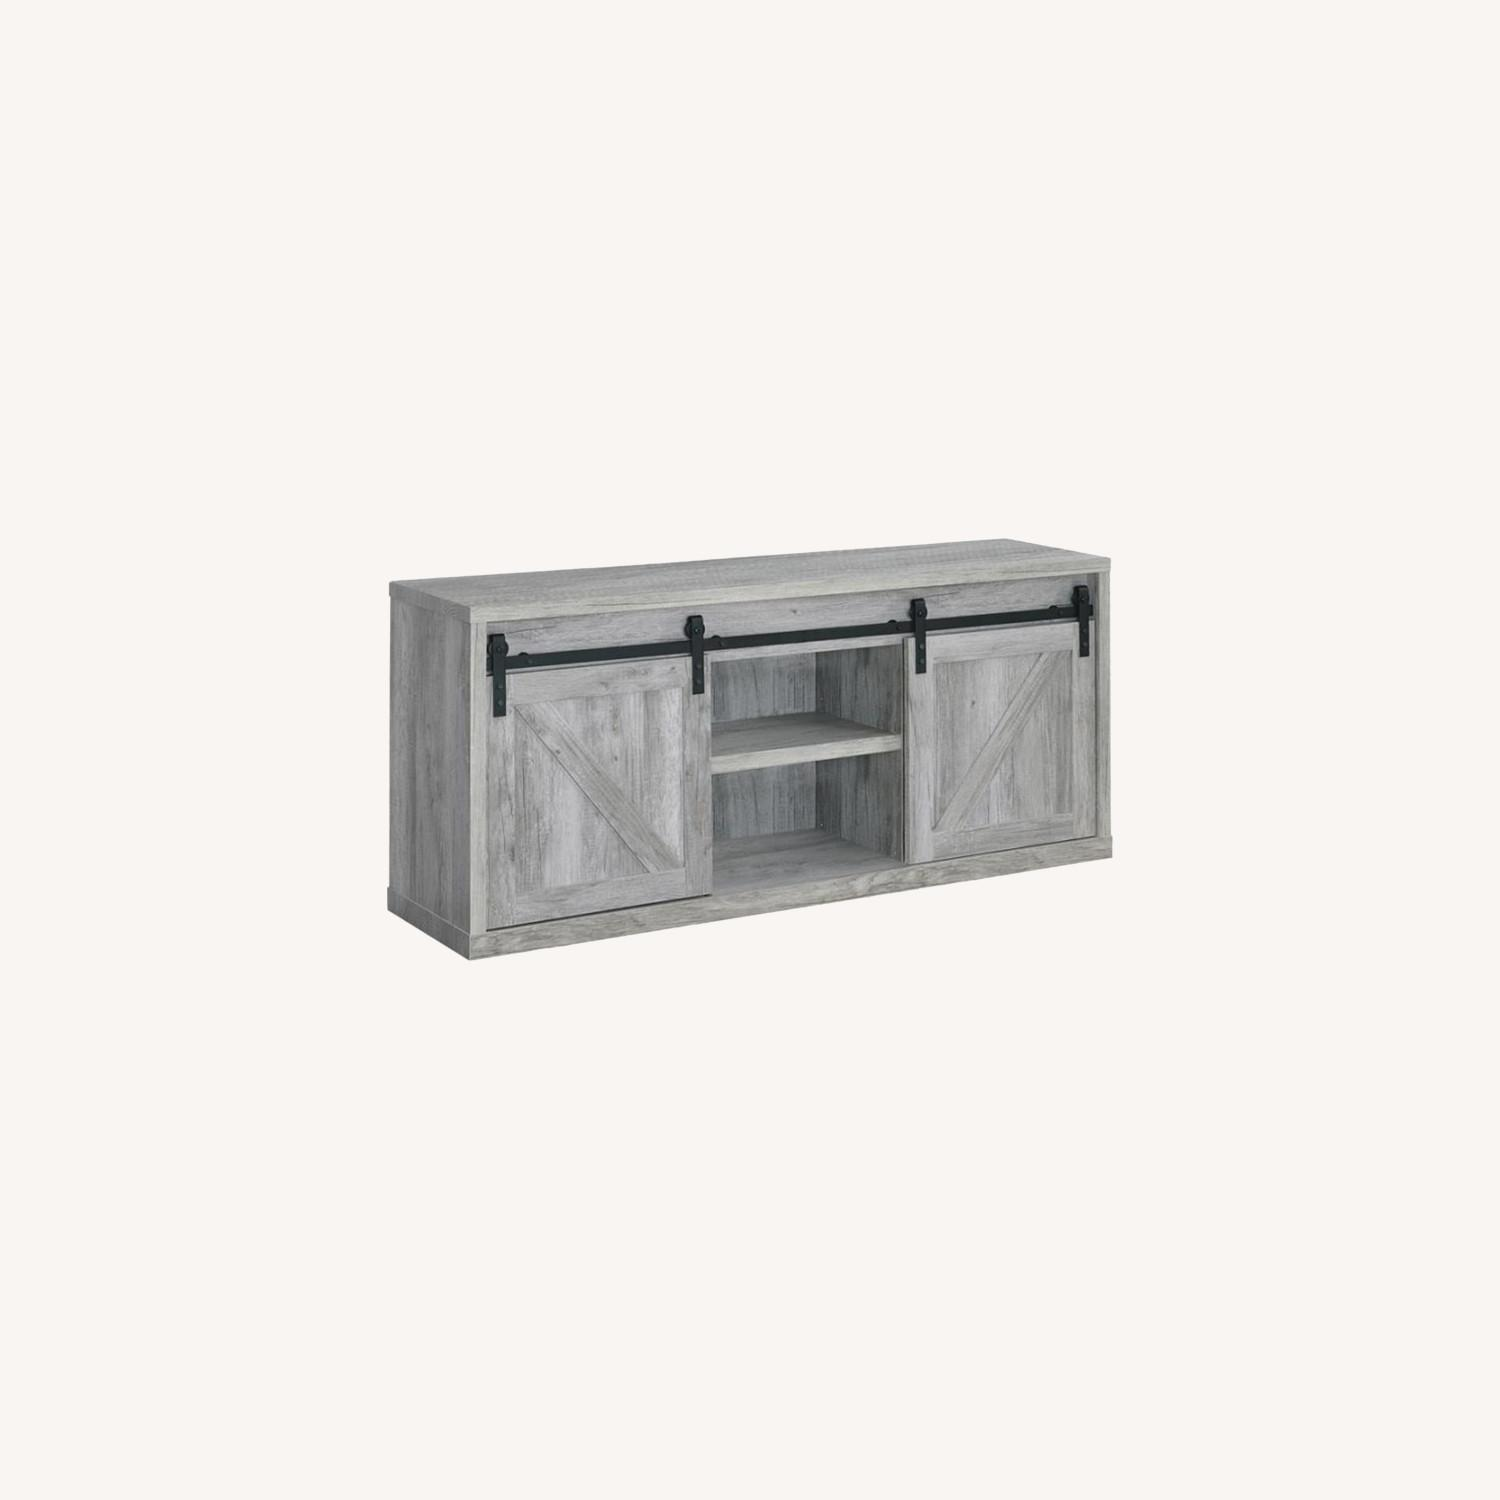 59-Inch TV Console In Grey Driftwood Finish - image-3